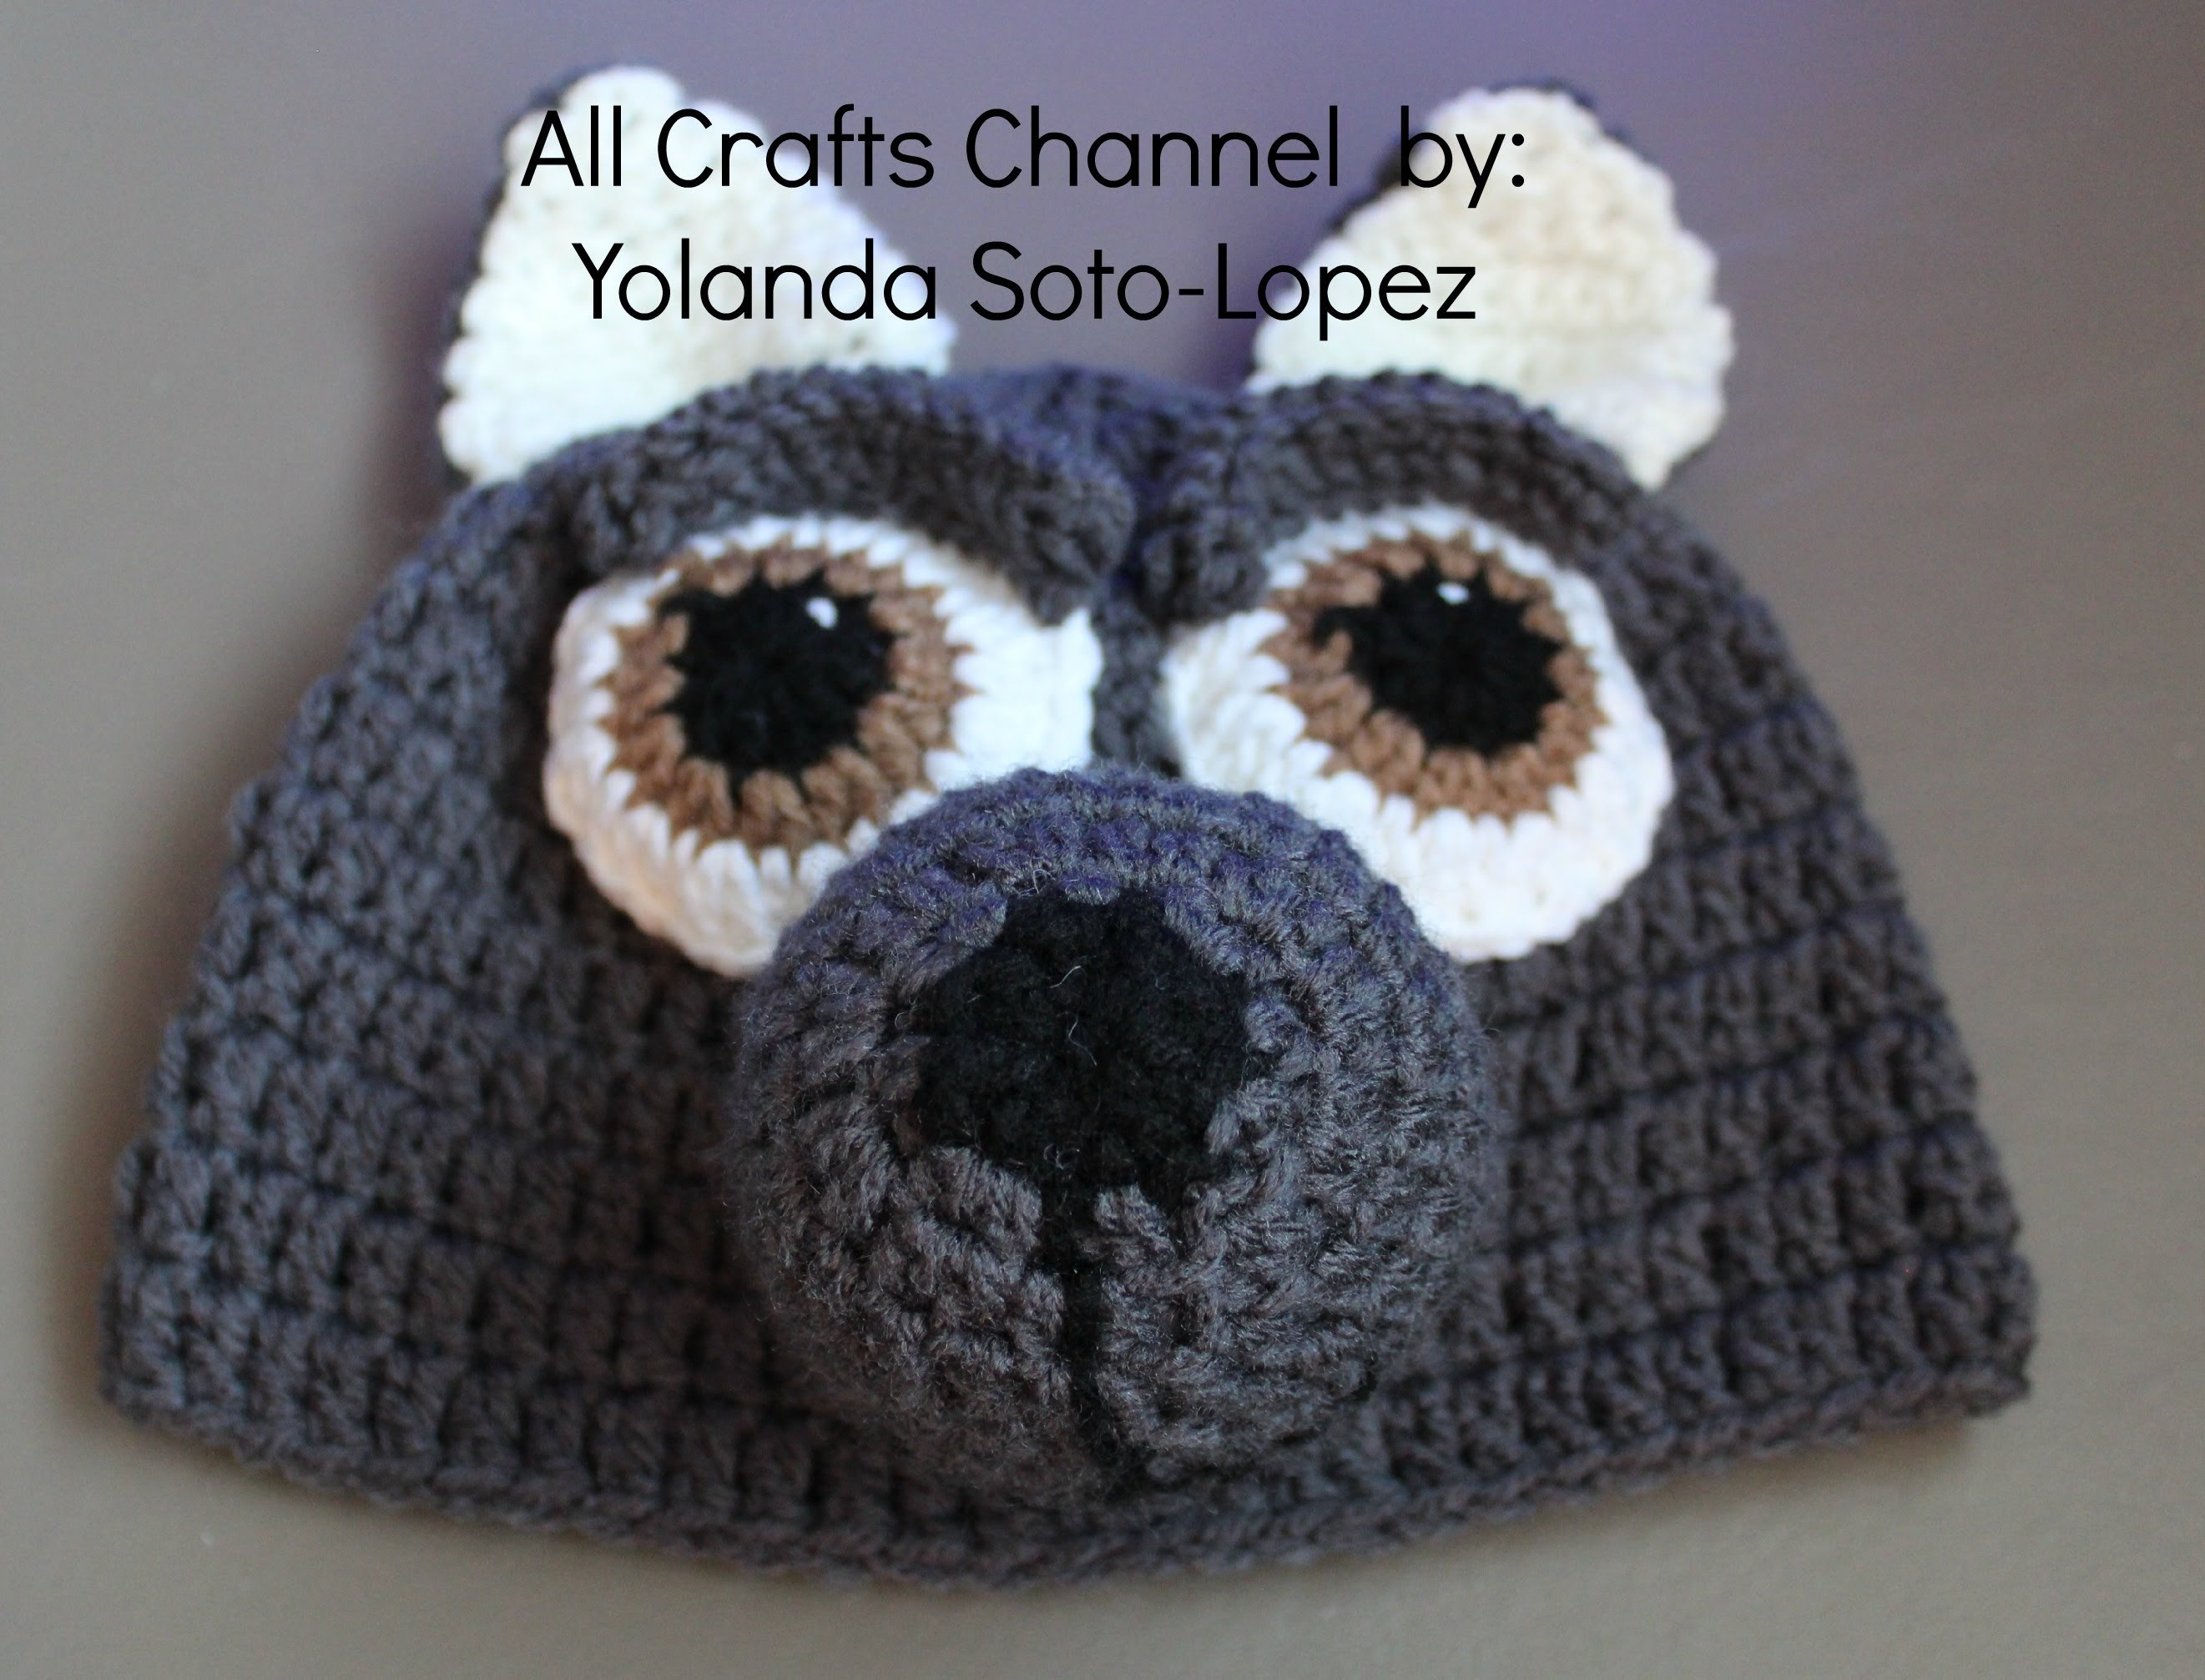 Gorro de lobo en #crochet  -video dos